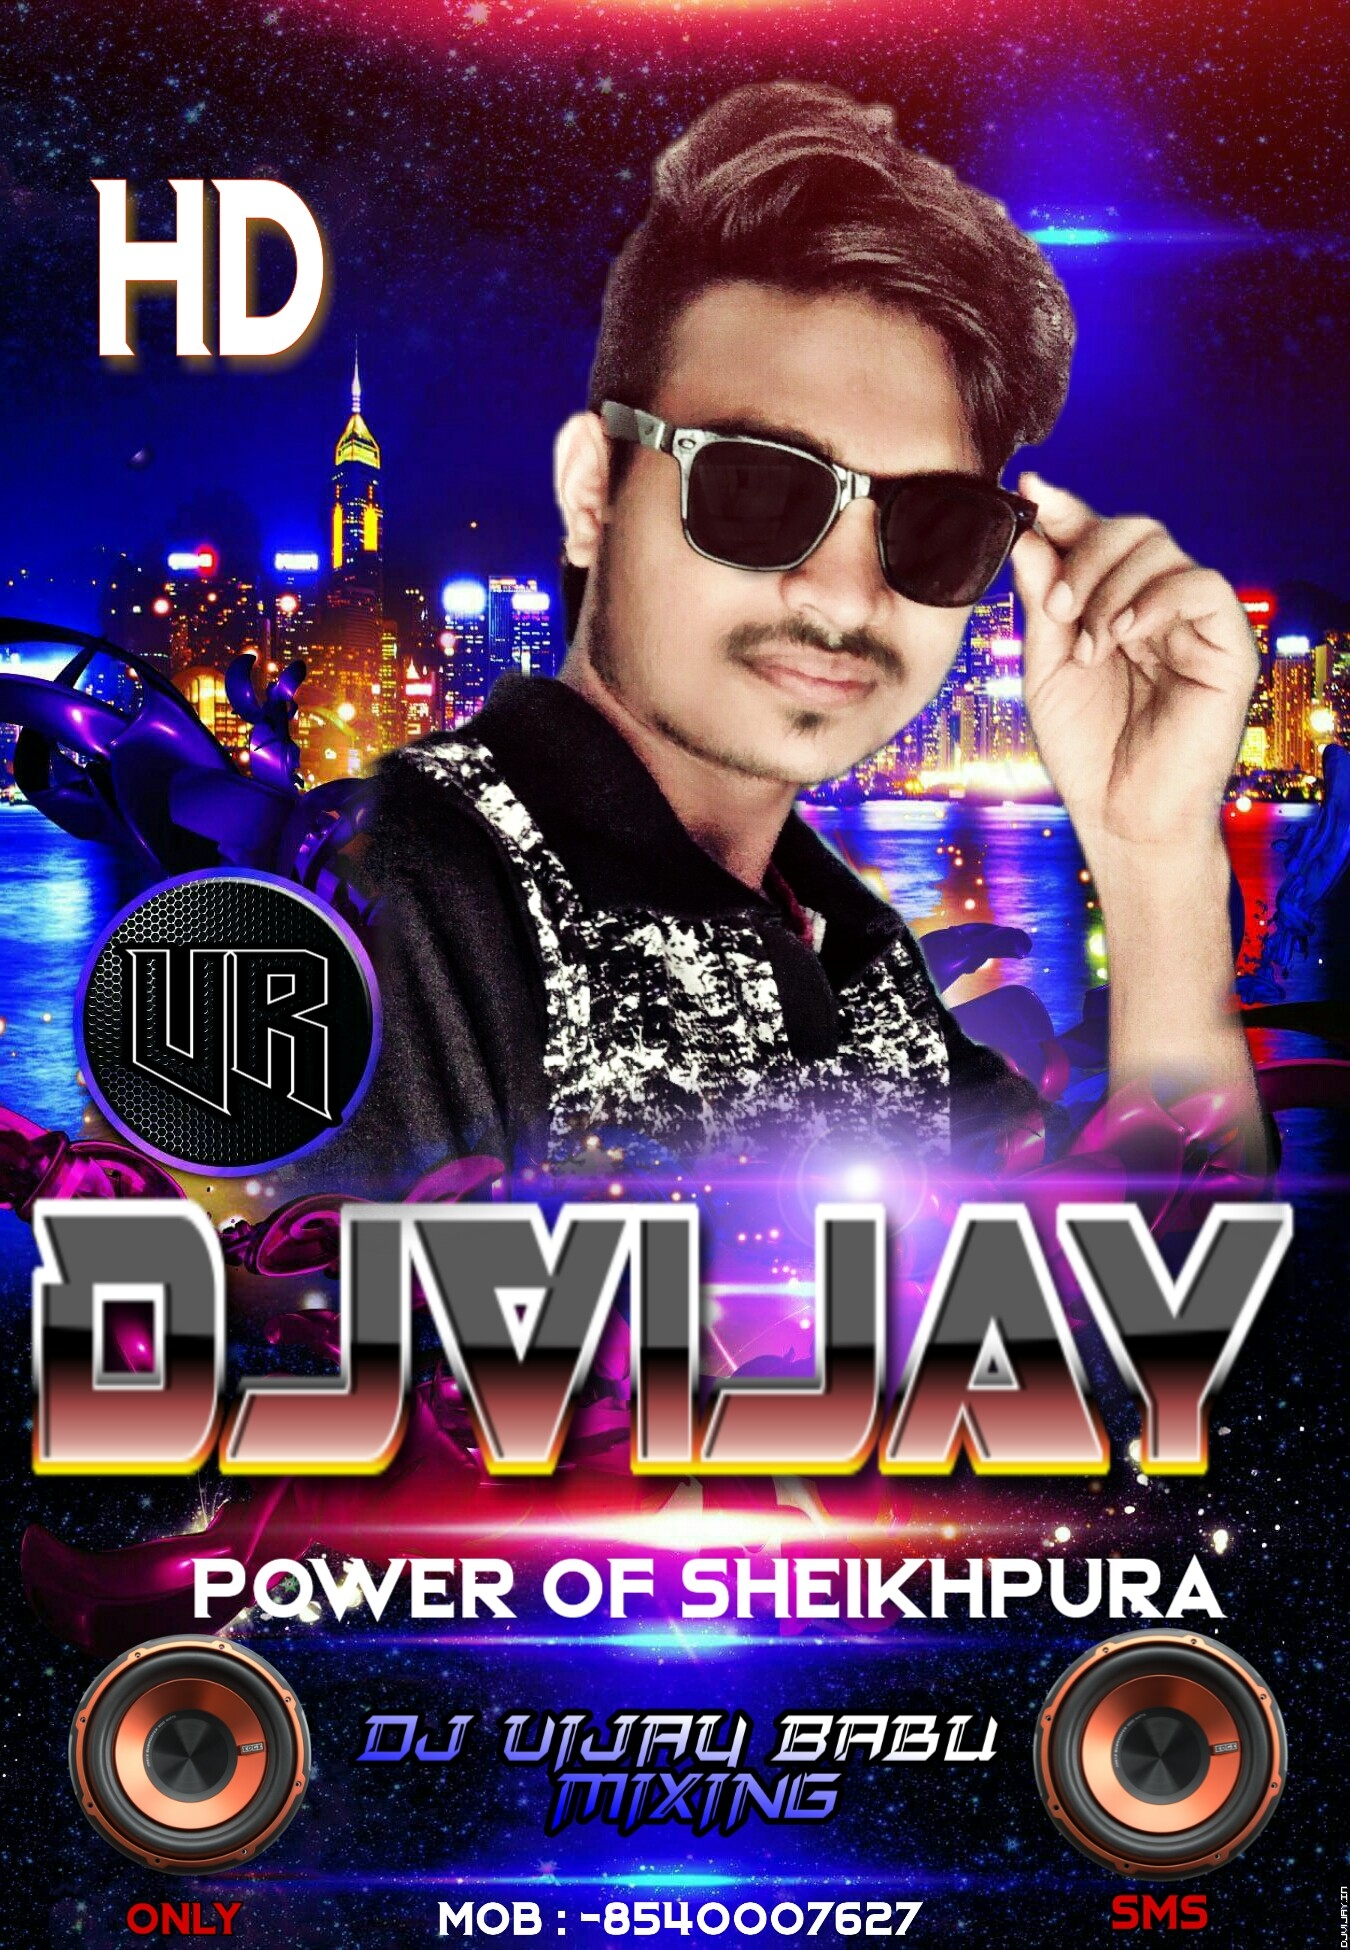 Bhatar_Sute_Sautin_Ke_Leke_Full_2_Dance_Mix_By_Dj_Vijay Babu.mp3